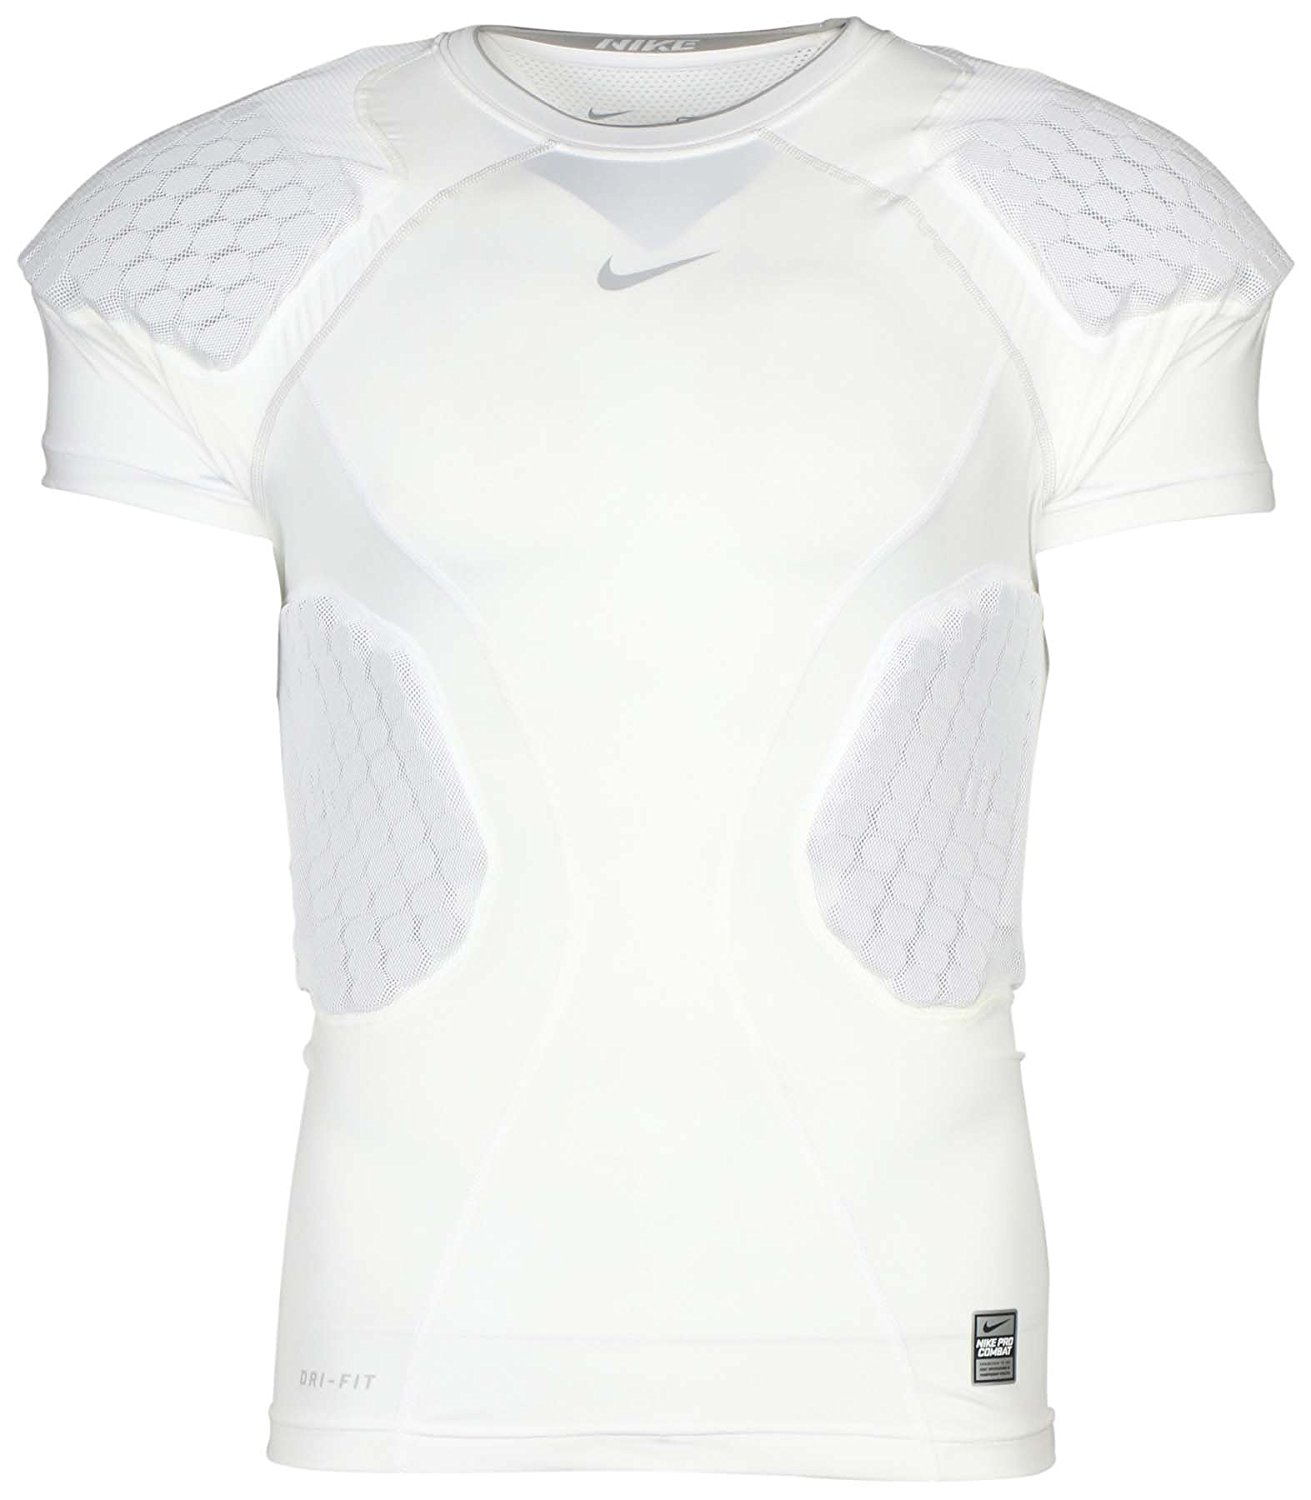 ba7cfaa6 Get Quotations · Nike Men's Dri-Fit Compression Hyperstrong Padded Training  Top-White